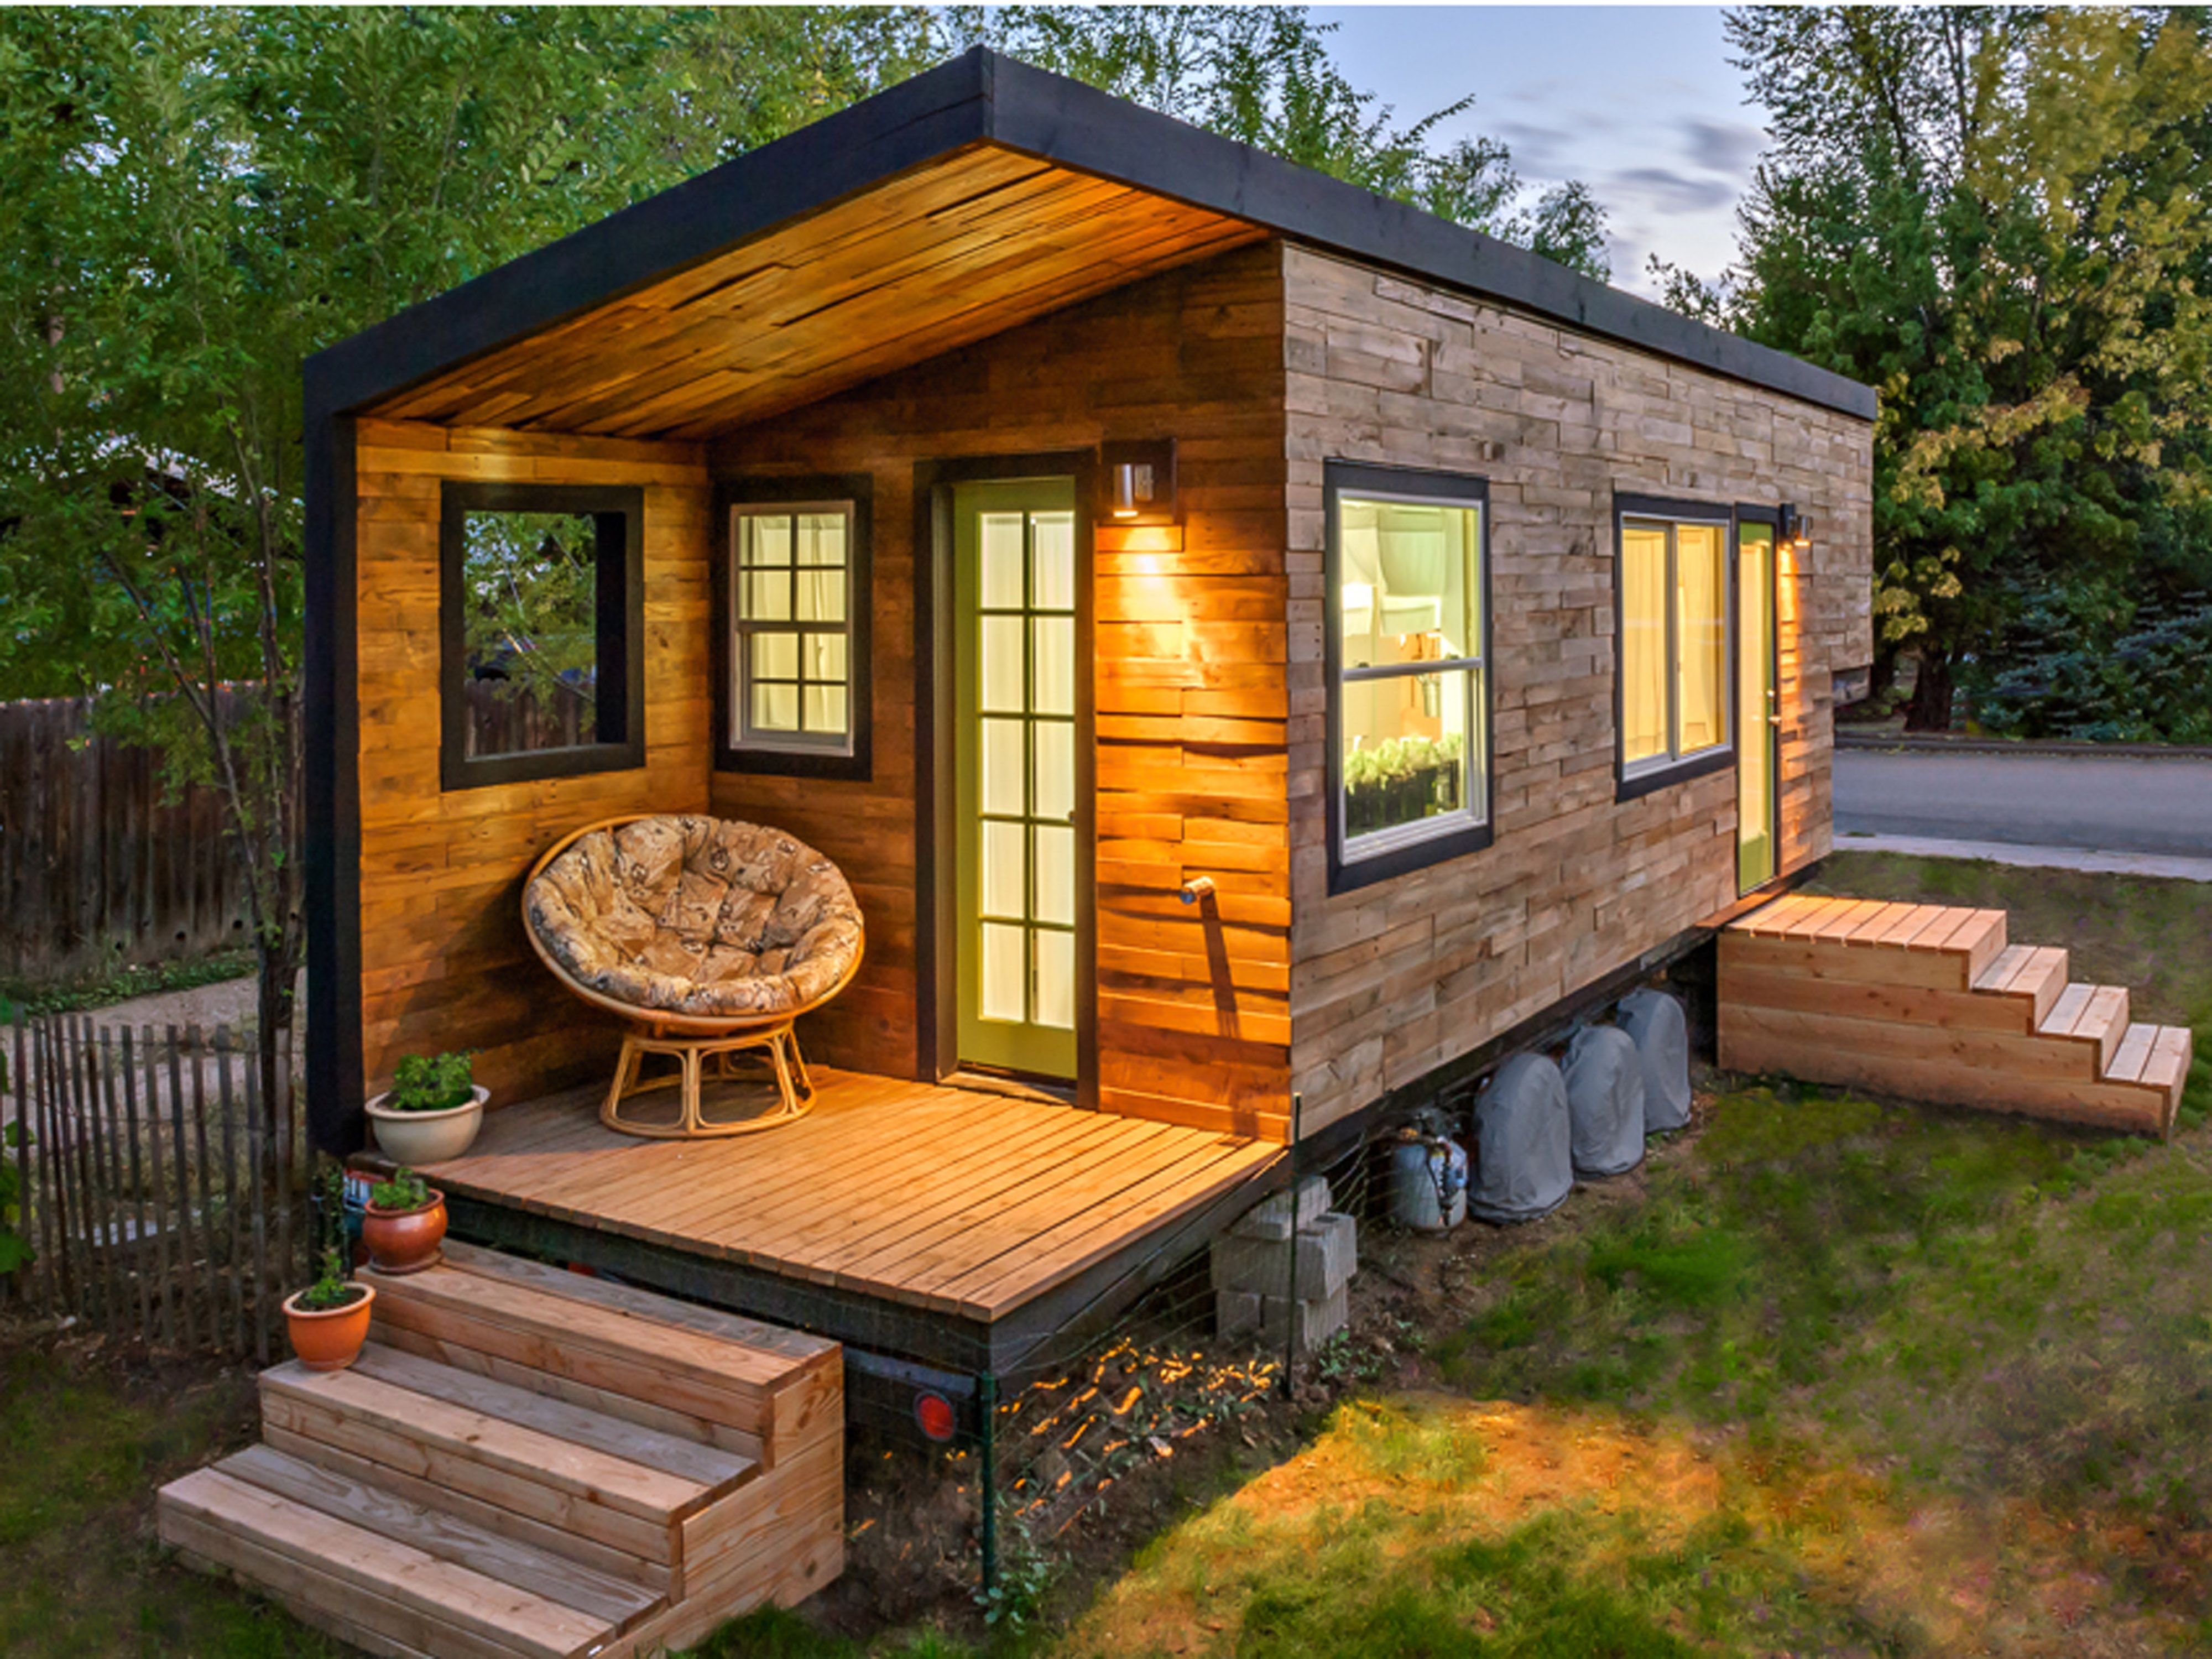 Tiny Houses That Will Fulfill Your GettingAwayFromItAll